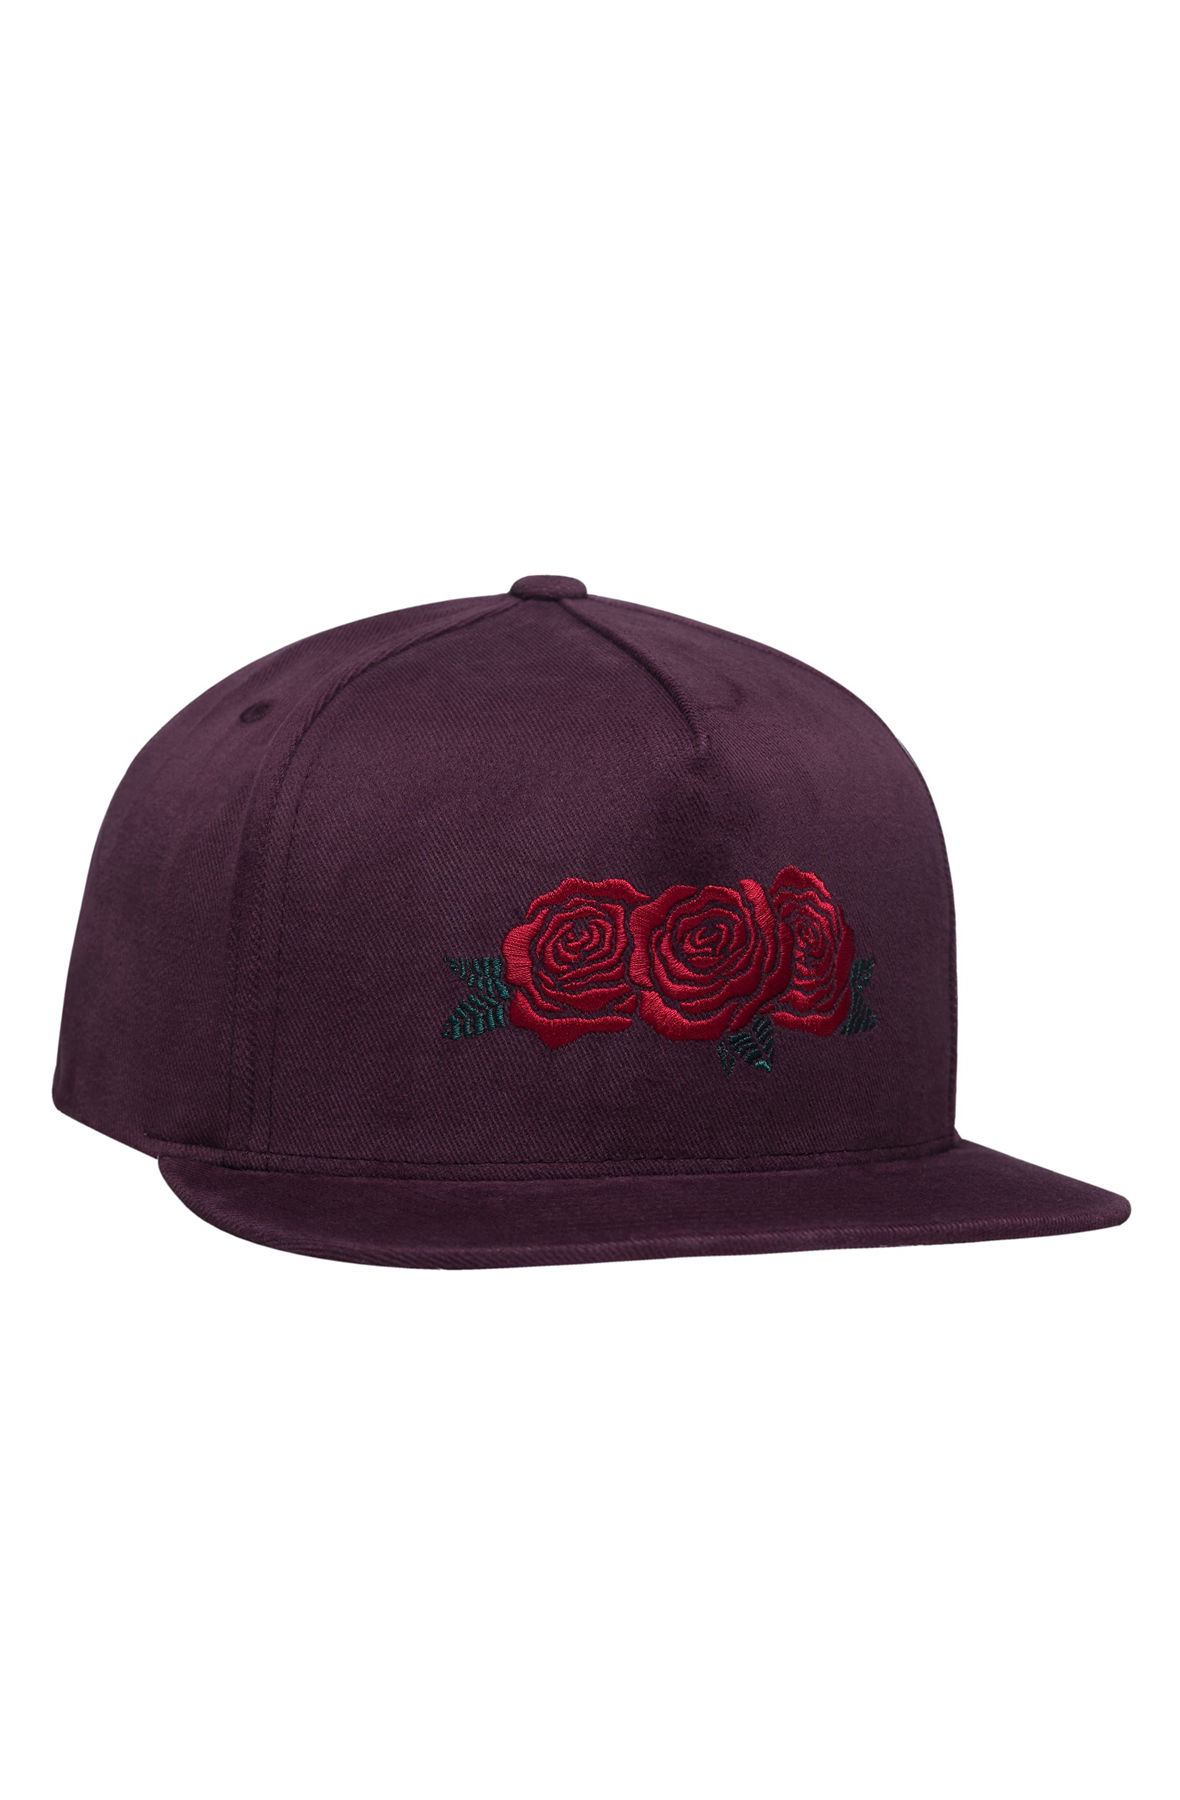 Image of The Triple Rose Snapback Hat in Port Royale